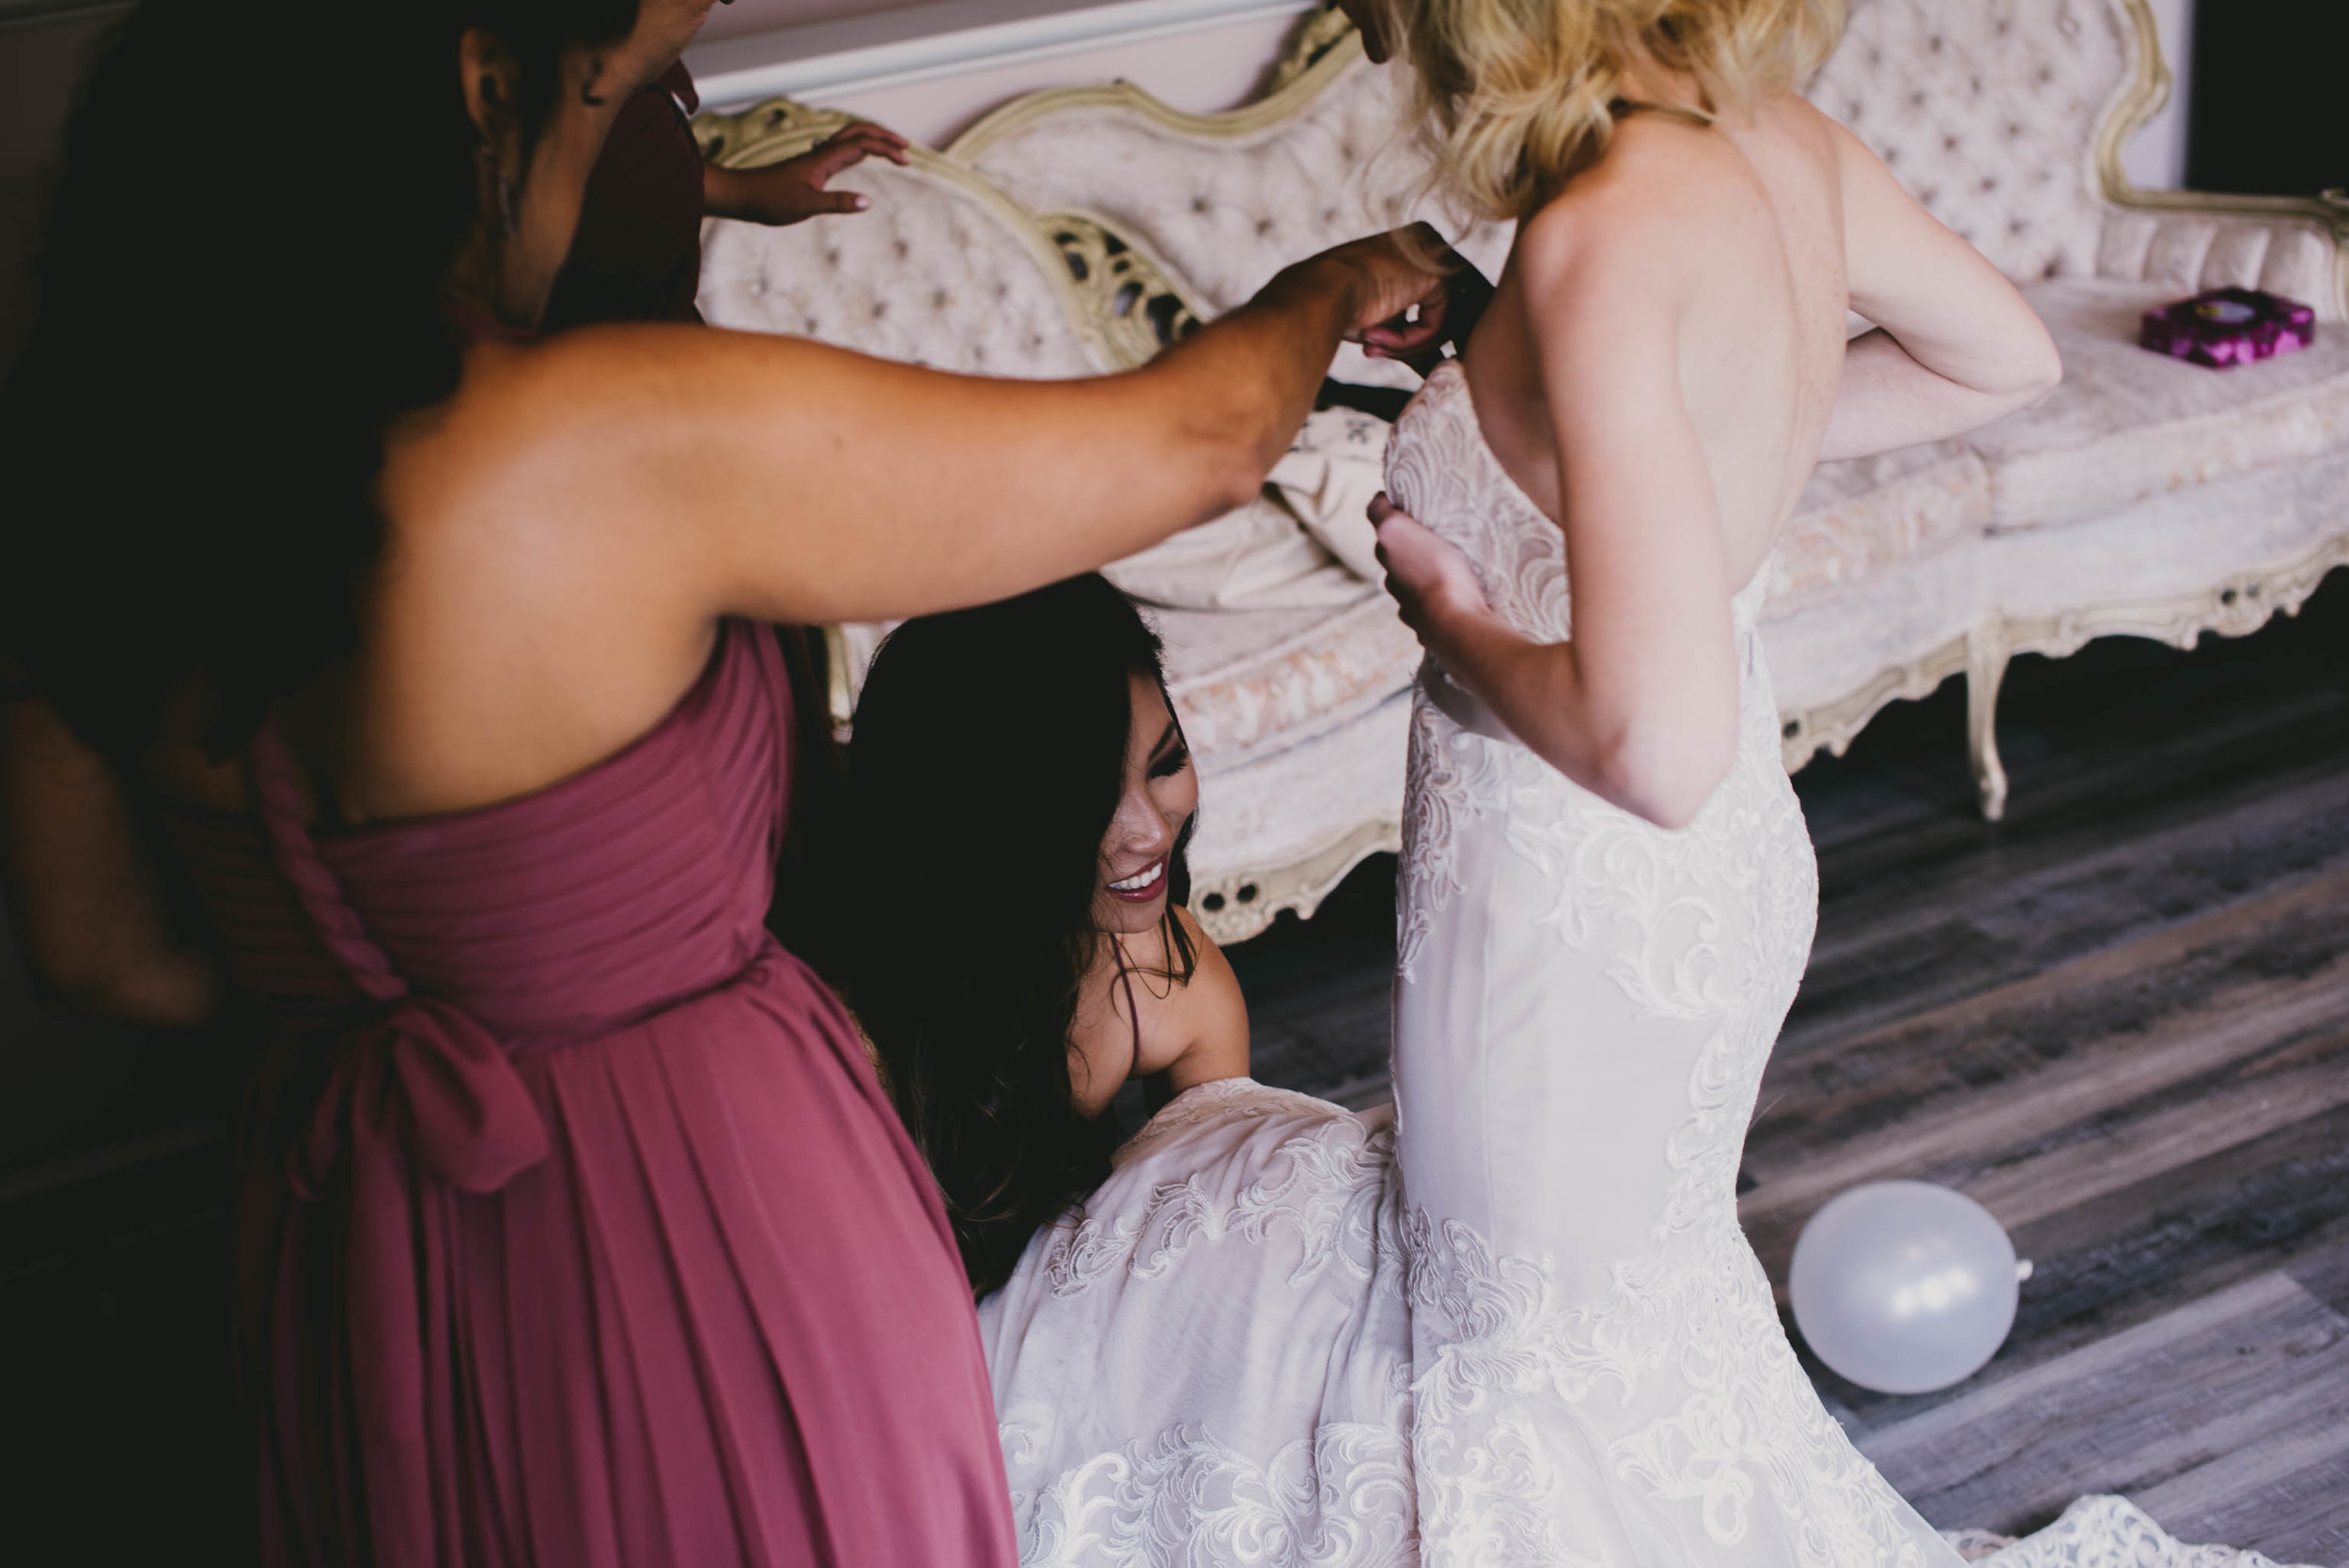 maid of honor helping to fix the brides dress